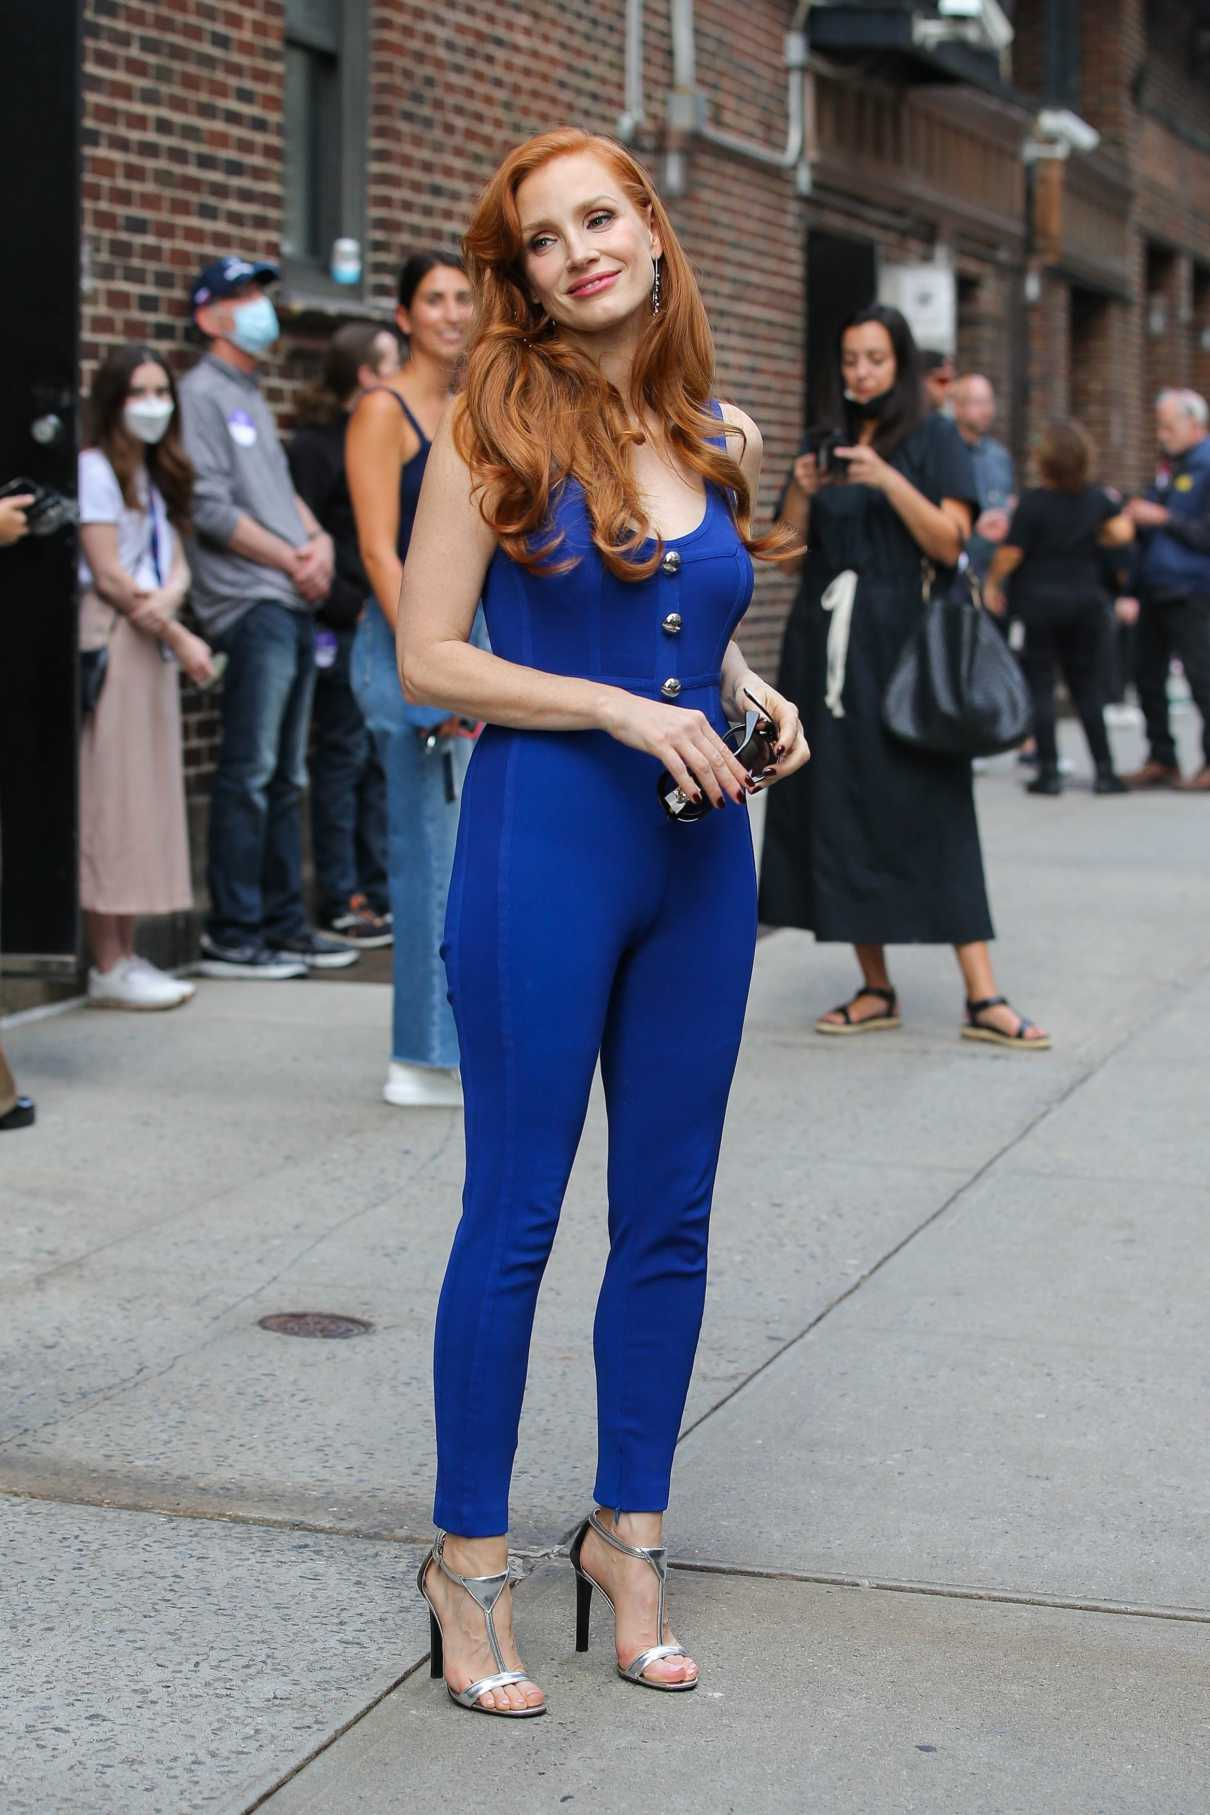 Jessica Chastain in a Blue Catsuit